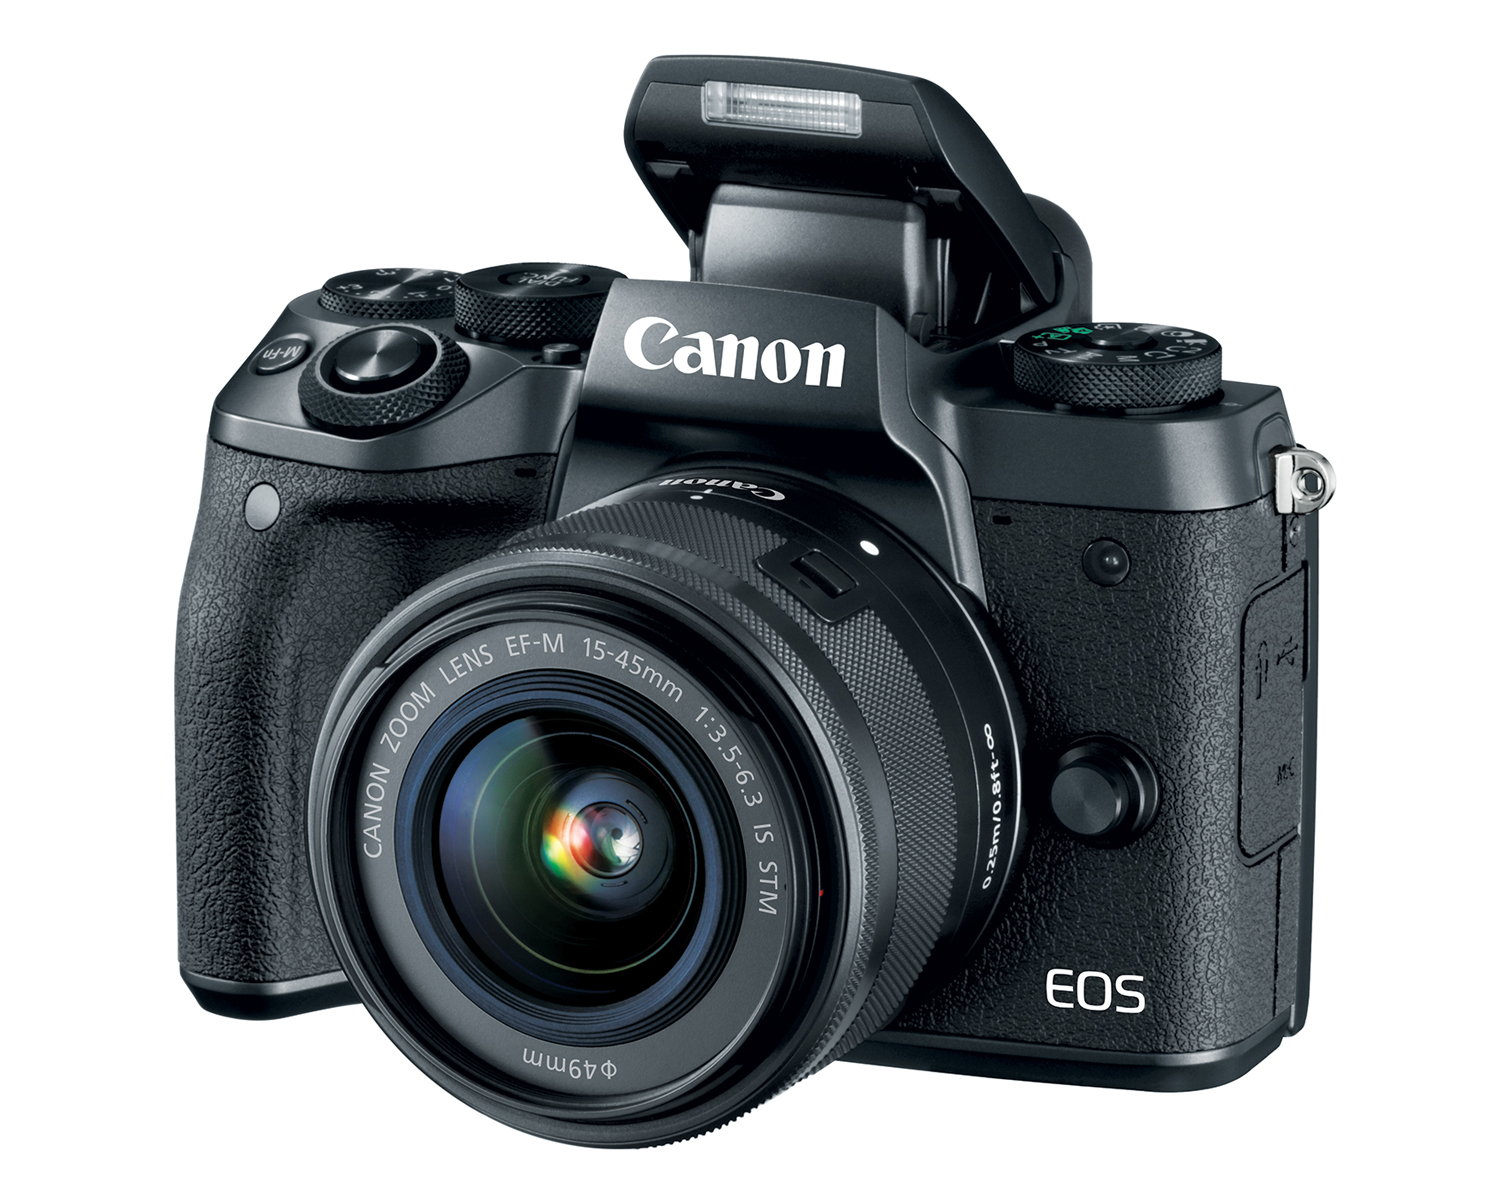 Canon EOS-1D X Mark III Review – It's A Game-Changer, Says NFL Photographer